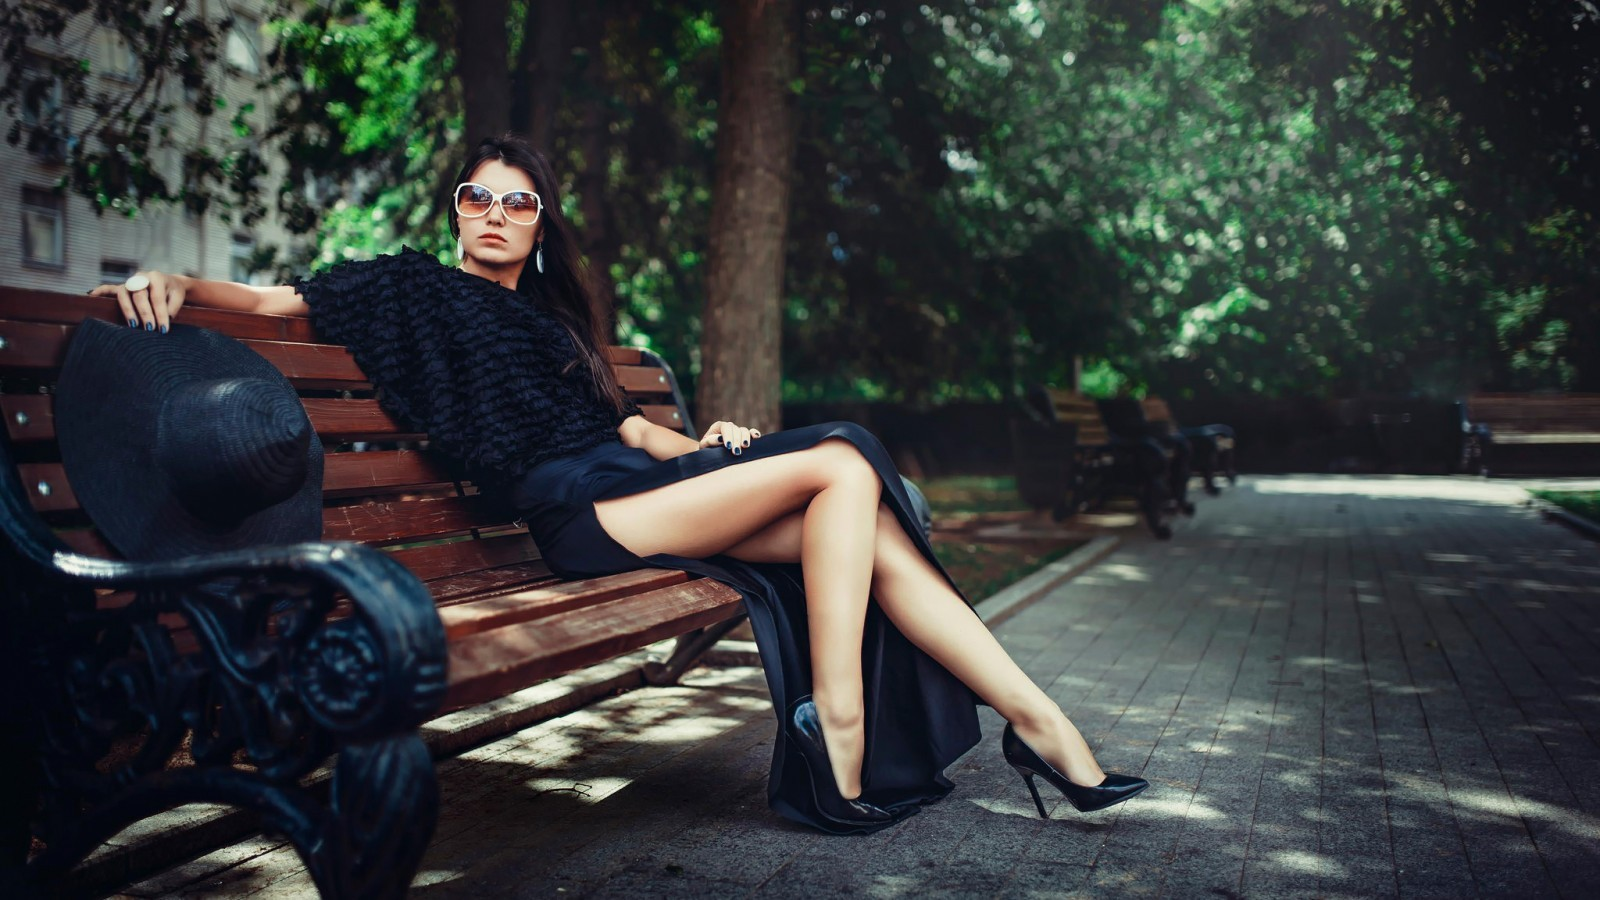 Wallpaper Of Girl Standing In Rain Legs Bench Women Brunette Sunglasses High Heels Wallpapers